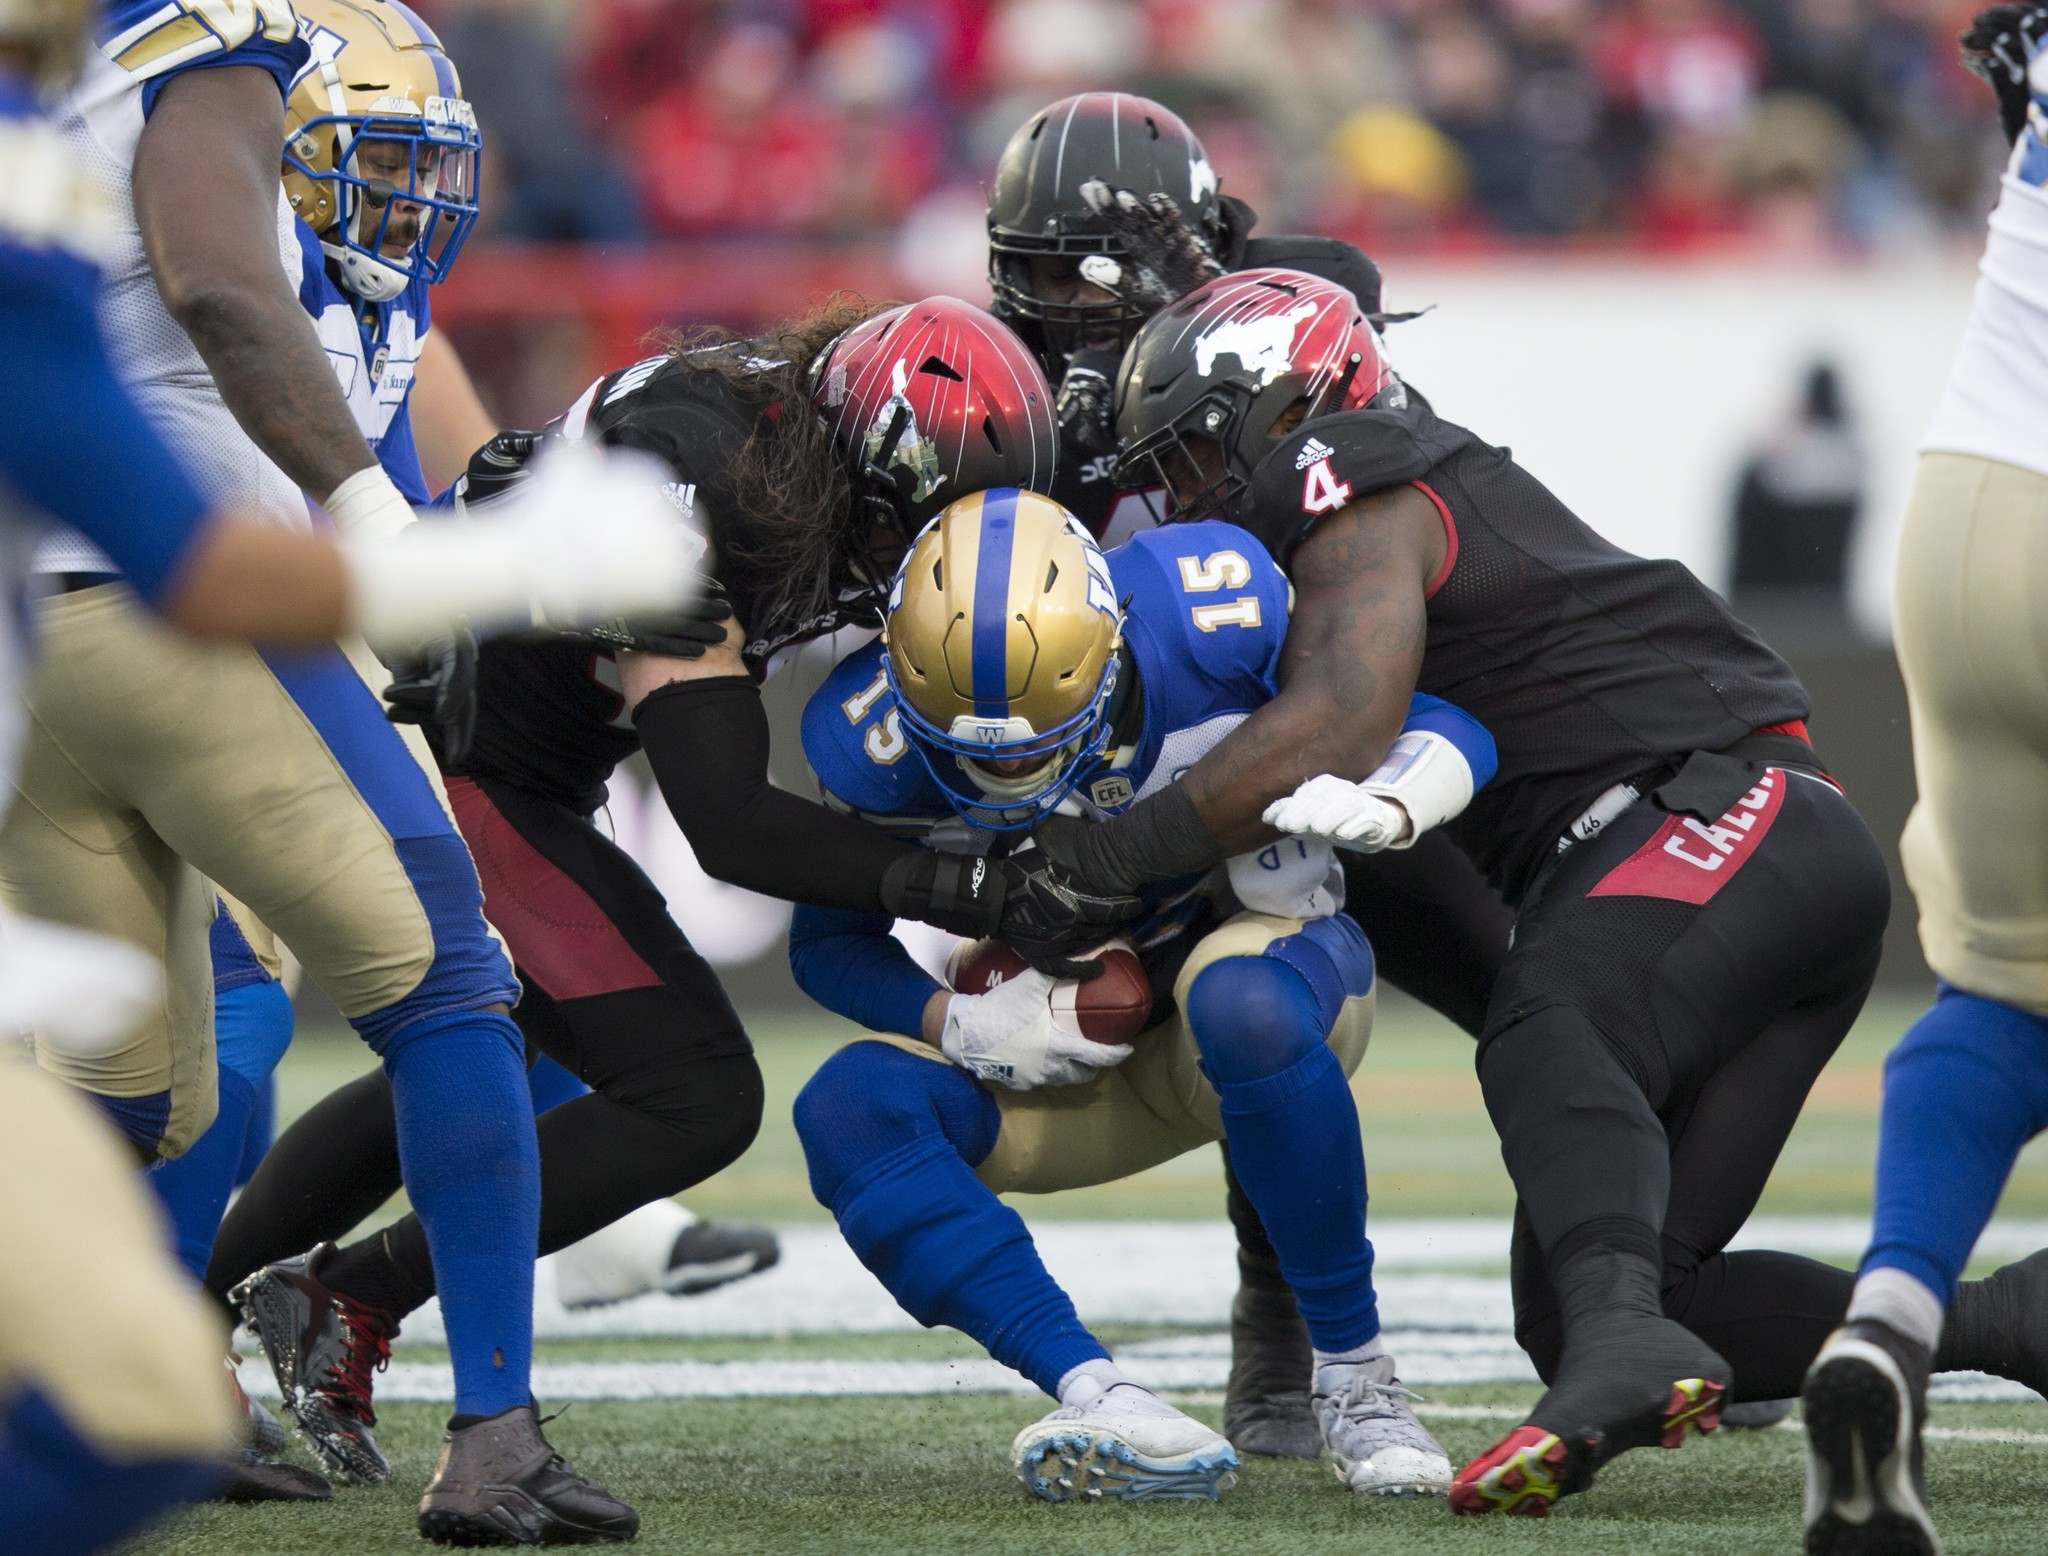 THE CANADIAN PRESS/Todd Korol</p><p>Winnipeg Blue Bombers quarterback Matt Nichols is sacked by Calgary Stampeders defenders during the first half of the West Final in Calgary, Sunday. The Bombers offence failed to score a major against a stingy Stampeders defence in the 22-14 loss.</p>